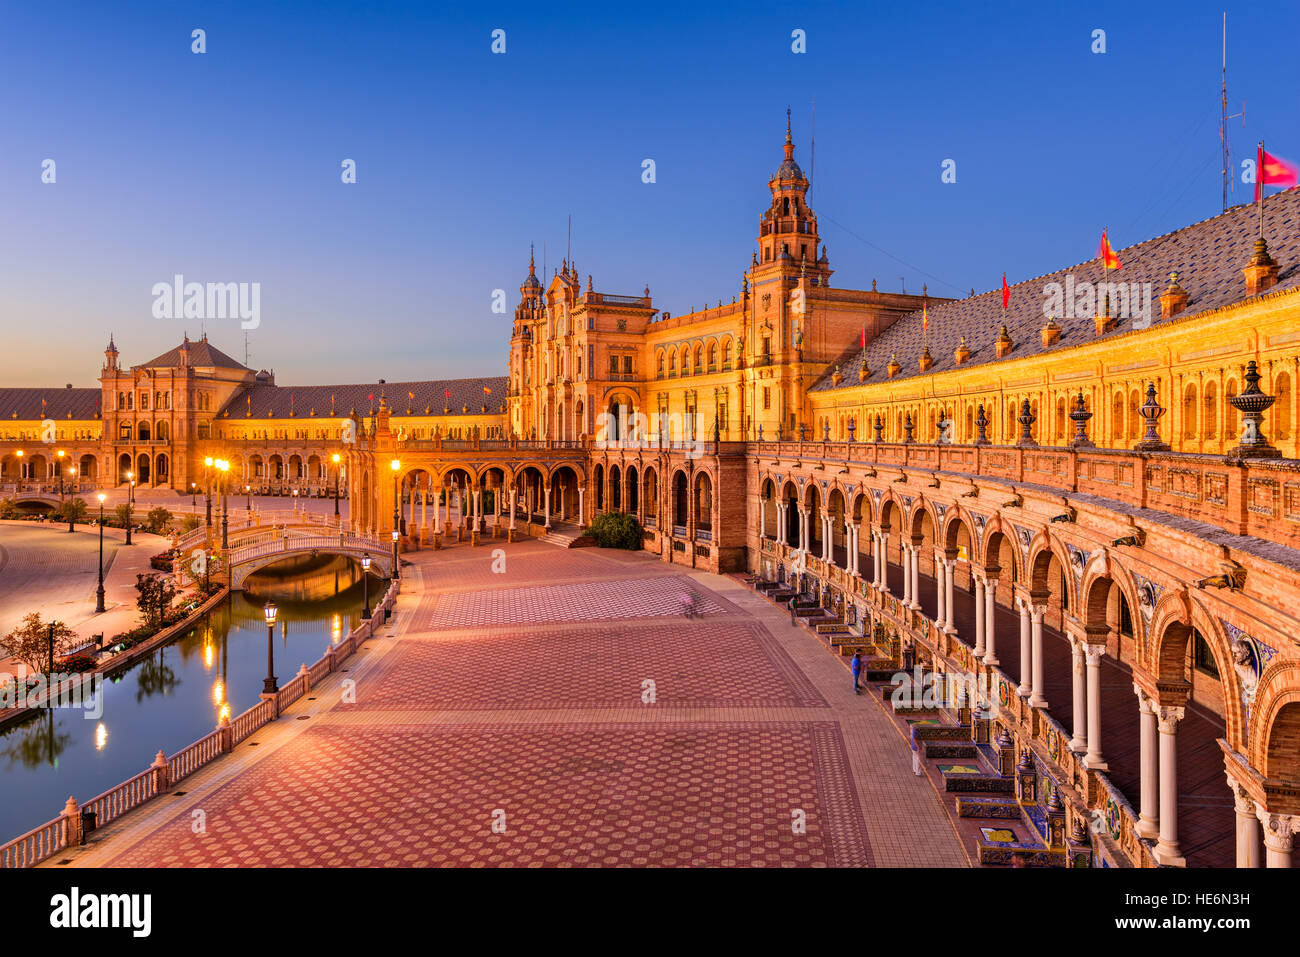 Seville, Spain at Spanish Square. - Stock Image